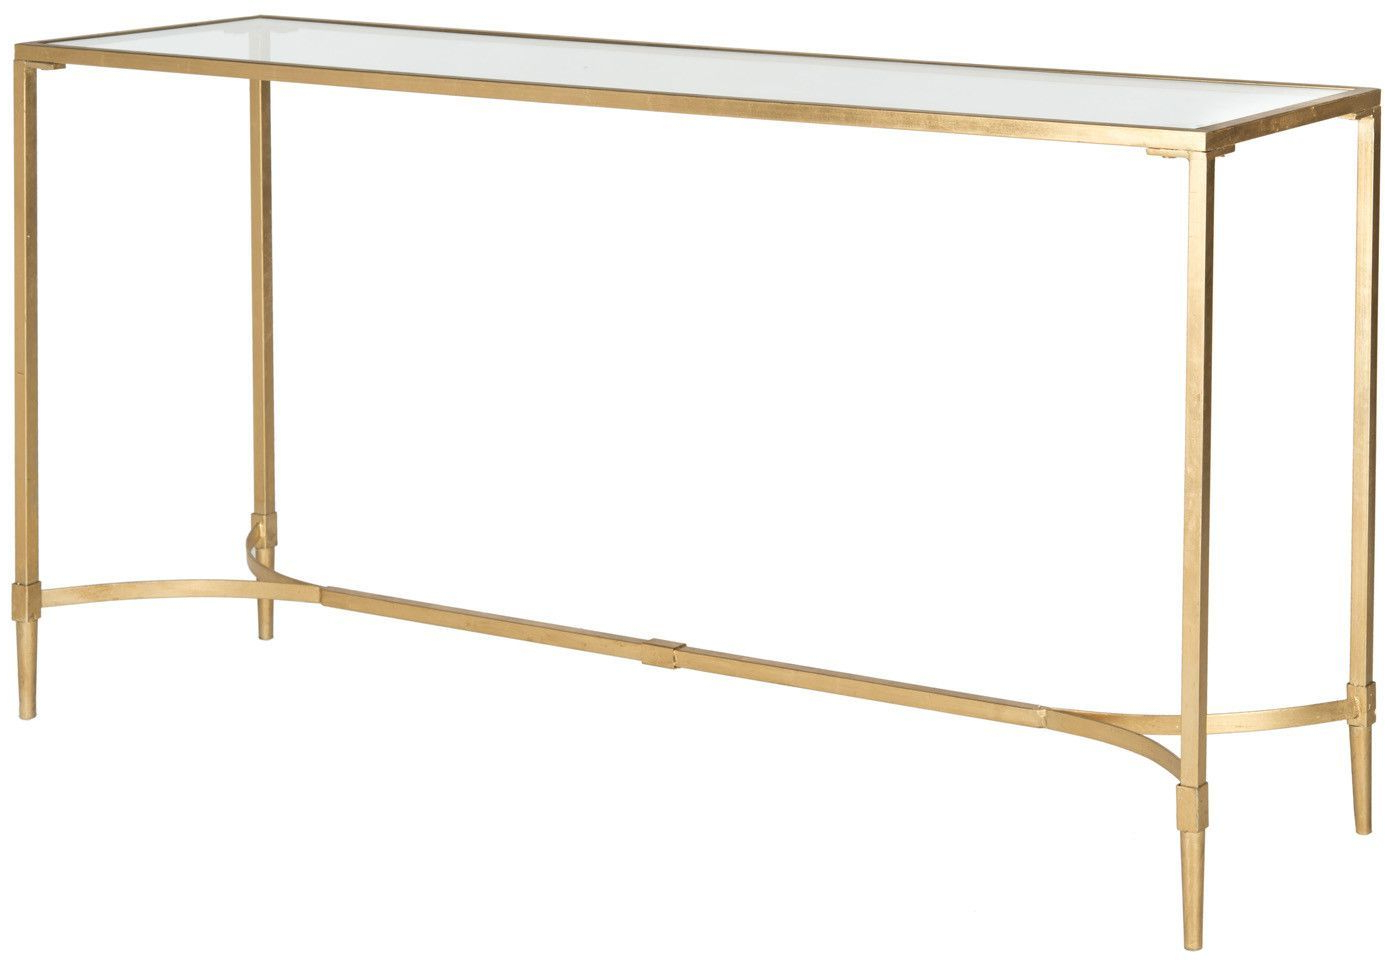 Consoles, Glass And Entry Hall Throughout Elke Glass Console Tables With Brass Base (View 4 of 20)